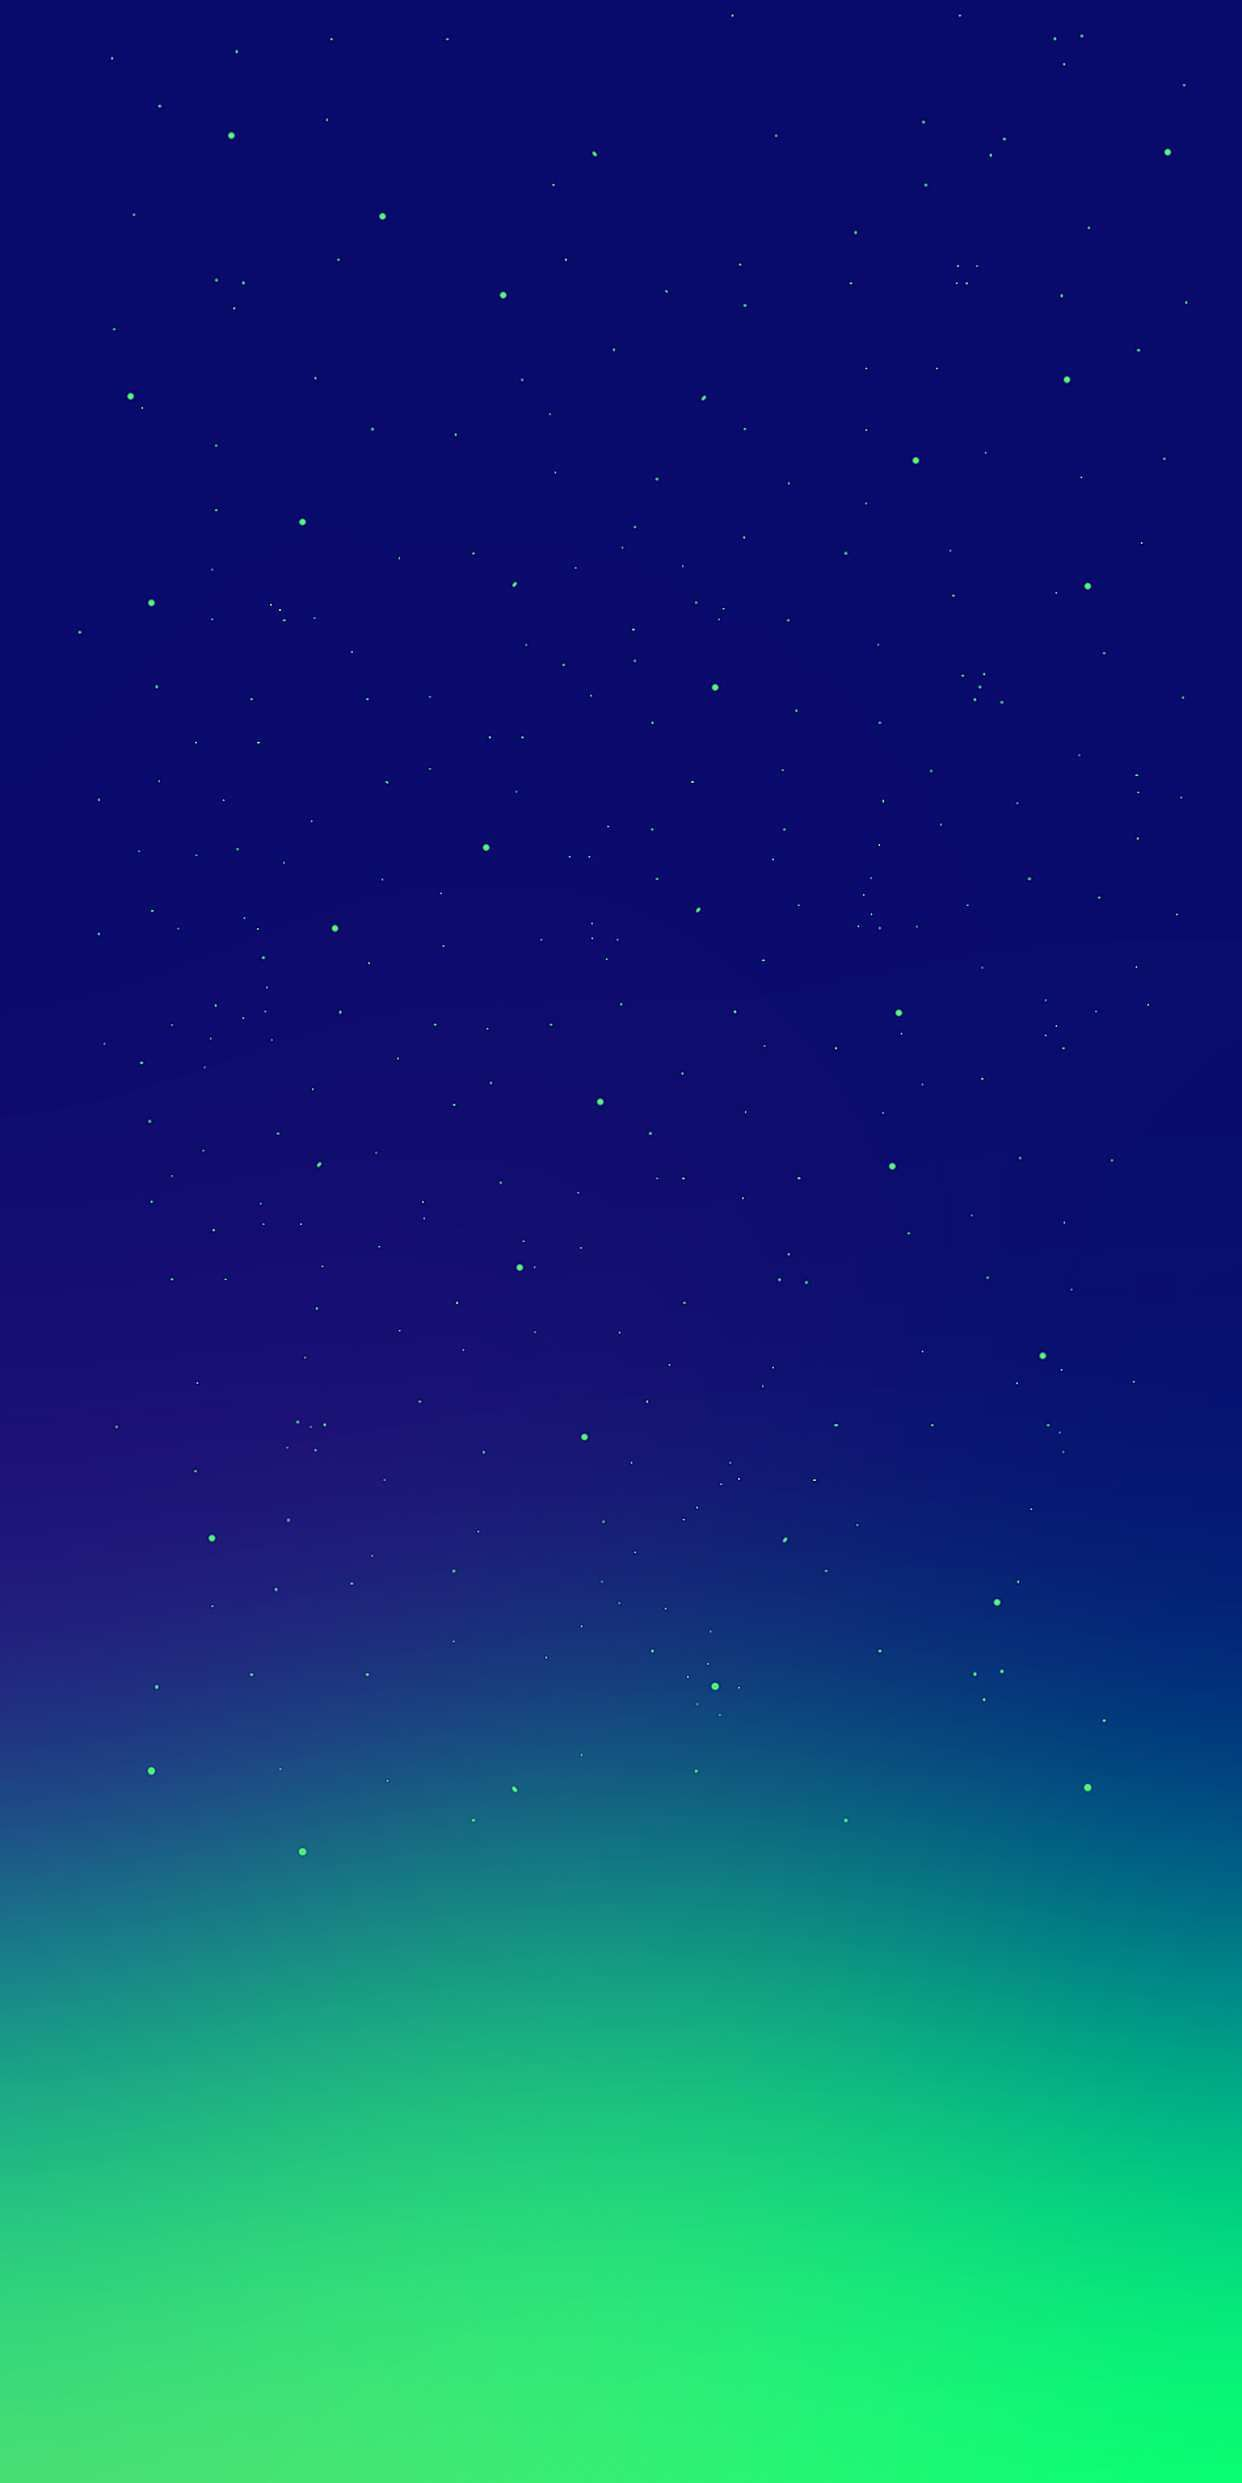 Universe For Iphone Xs Max Iphone Xr Wallpaper In 2019 Iphone